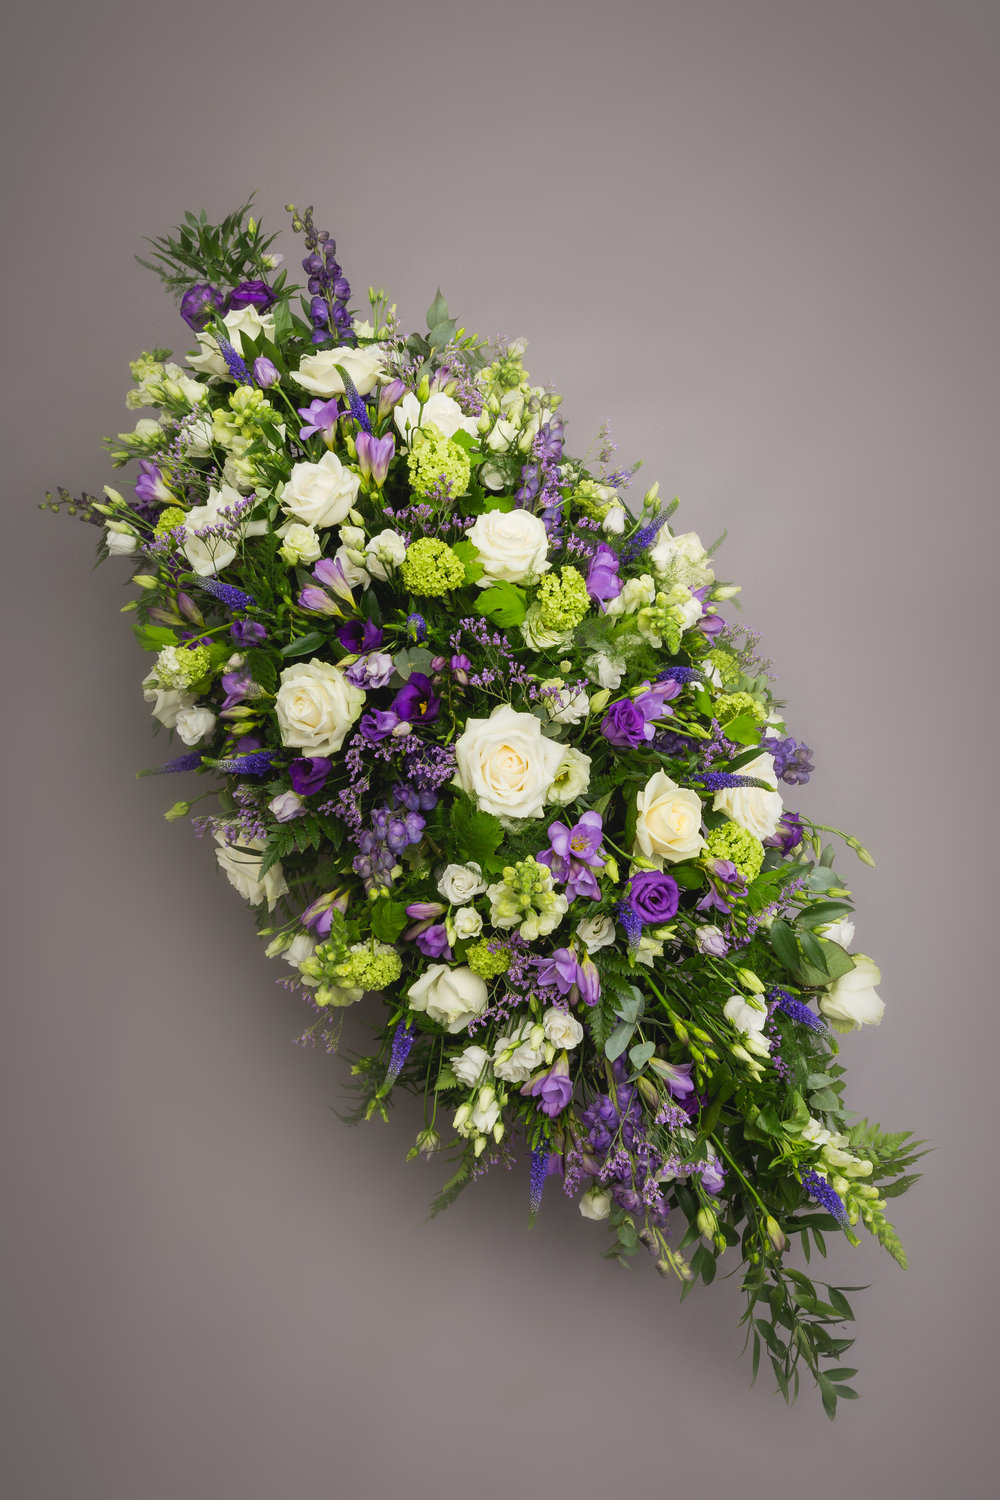 Funeral Flowers Guide Linden Tree Flowers